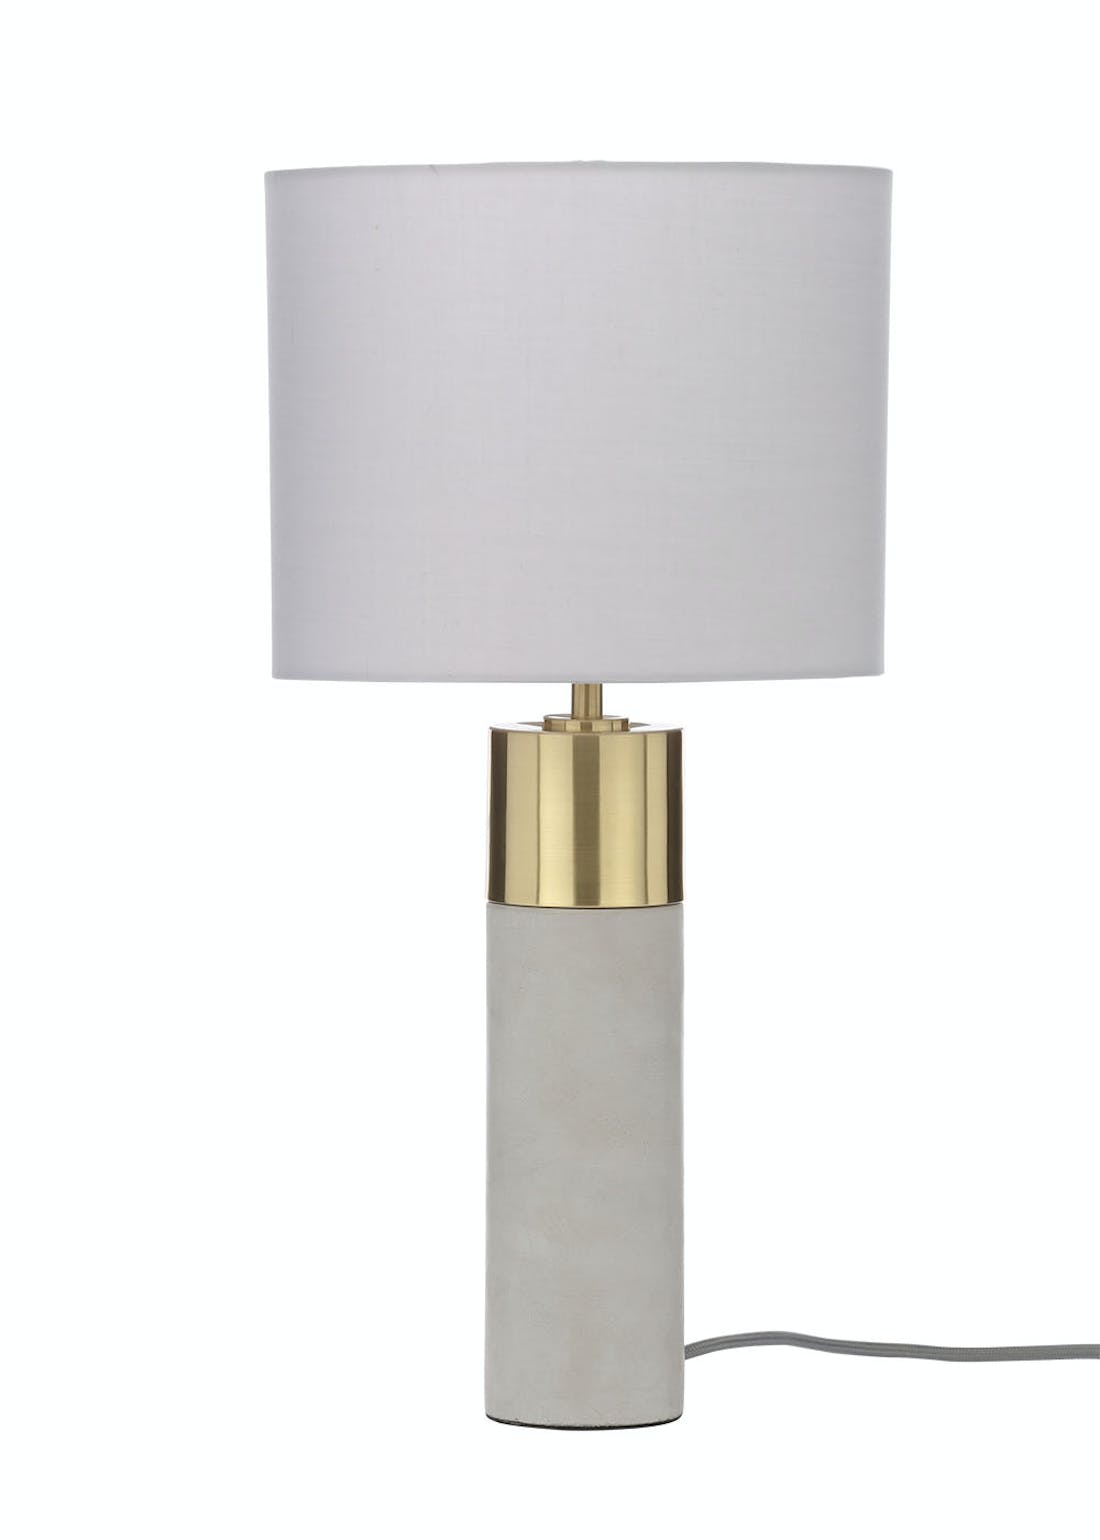 Titan Table Lamp (H50cm x W25cm)